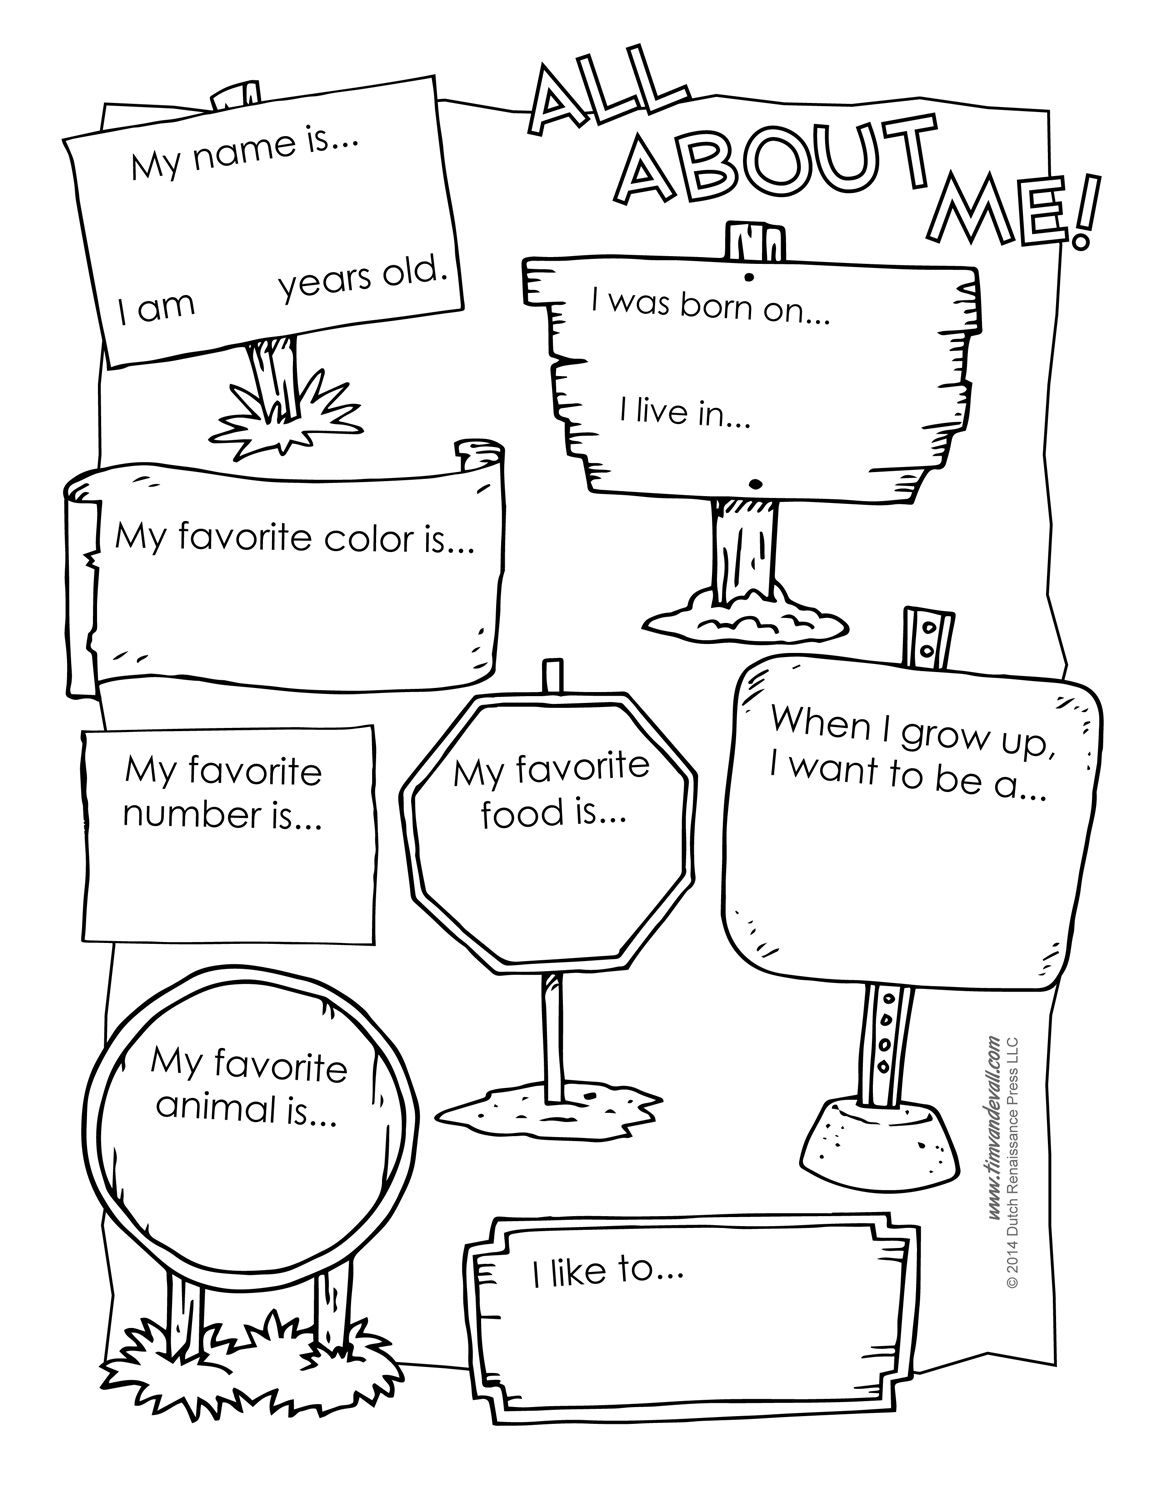 photo regarding All About Me Free Printable Worksheets referred to as all relating to me preschool template 6 Most straightforward Illustrations or photos of All Above